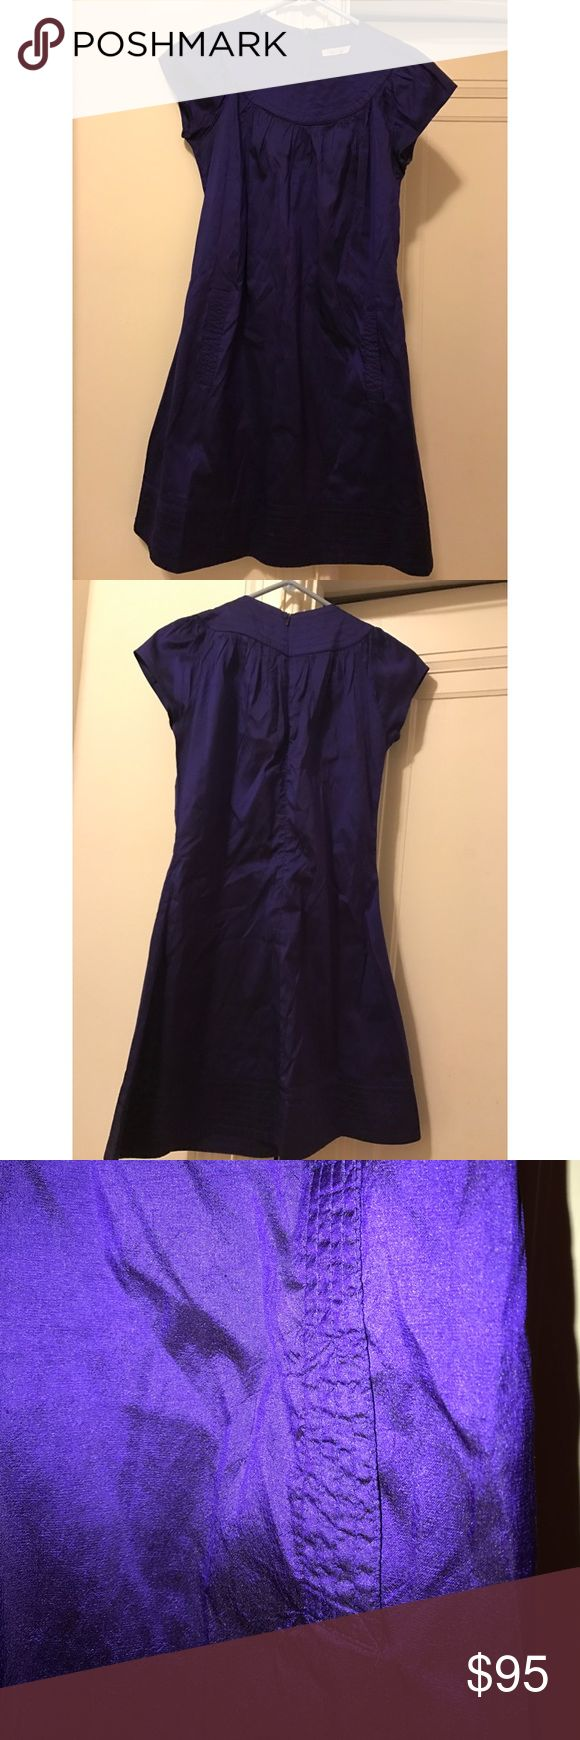 CALYPSO Christiane Celle Pazzi Dress XS Calypso St. Barth 100% silk dress. A little above the knee & has pockets. Machine wash cold, hang dry. Excellent condition Calypso St. Barth Dresses Mini